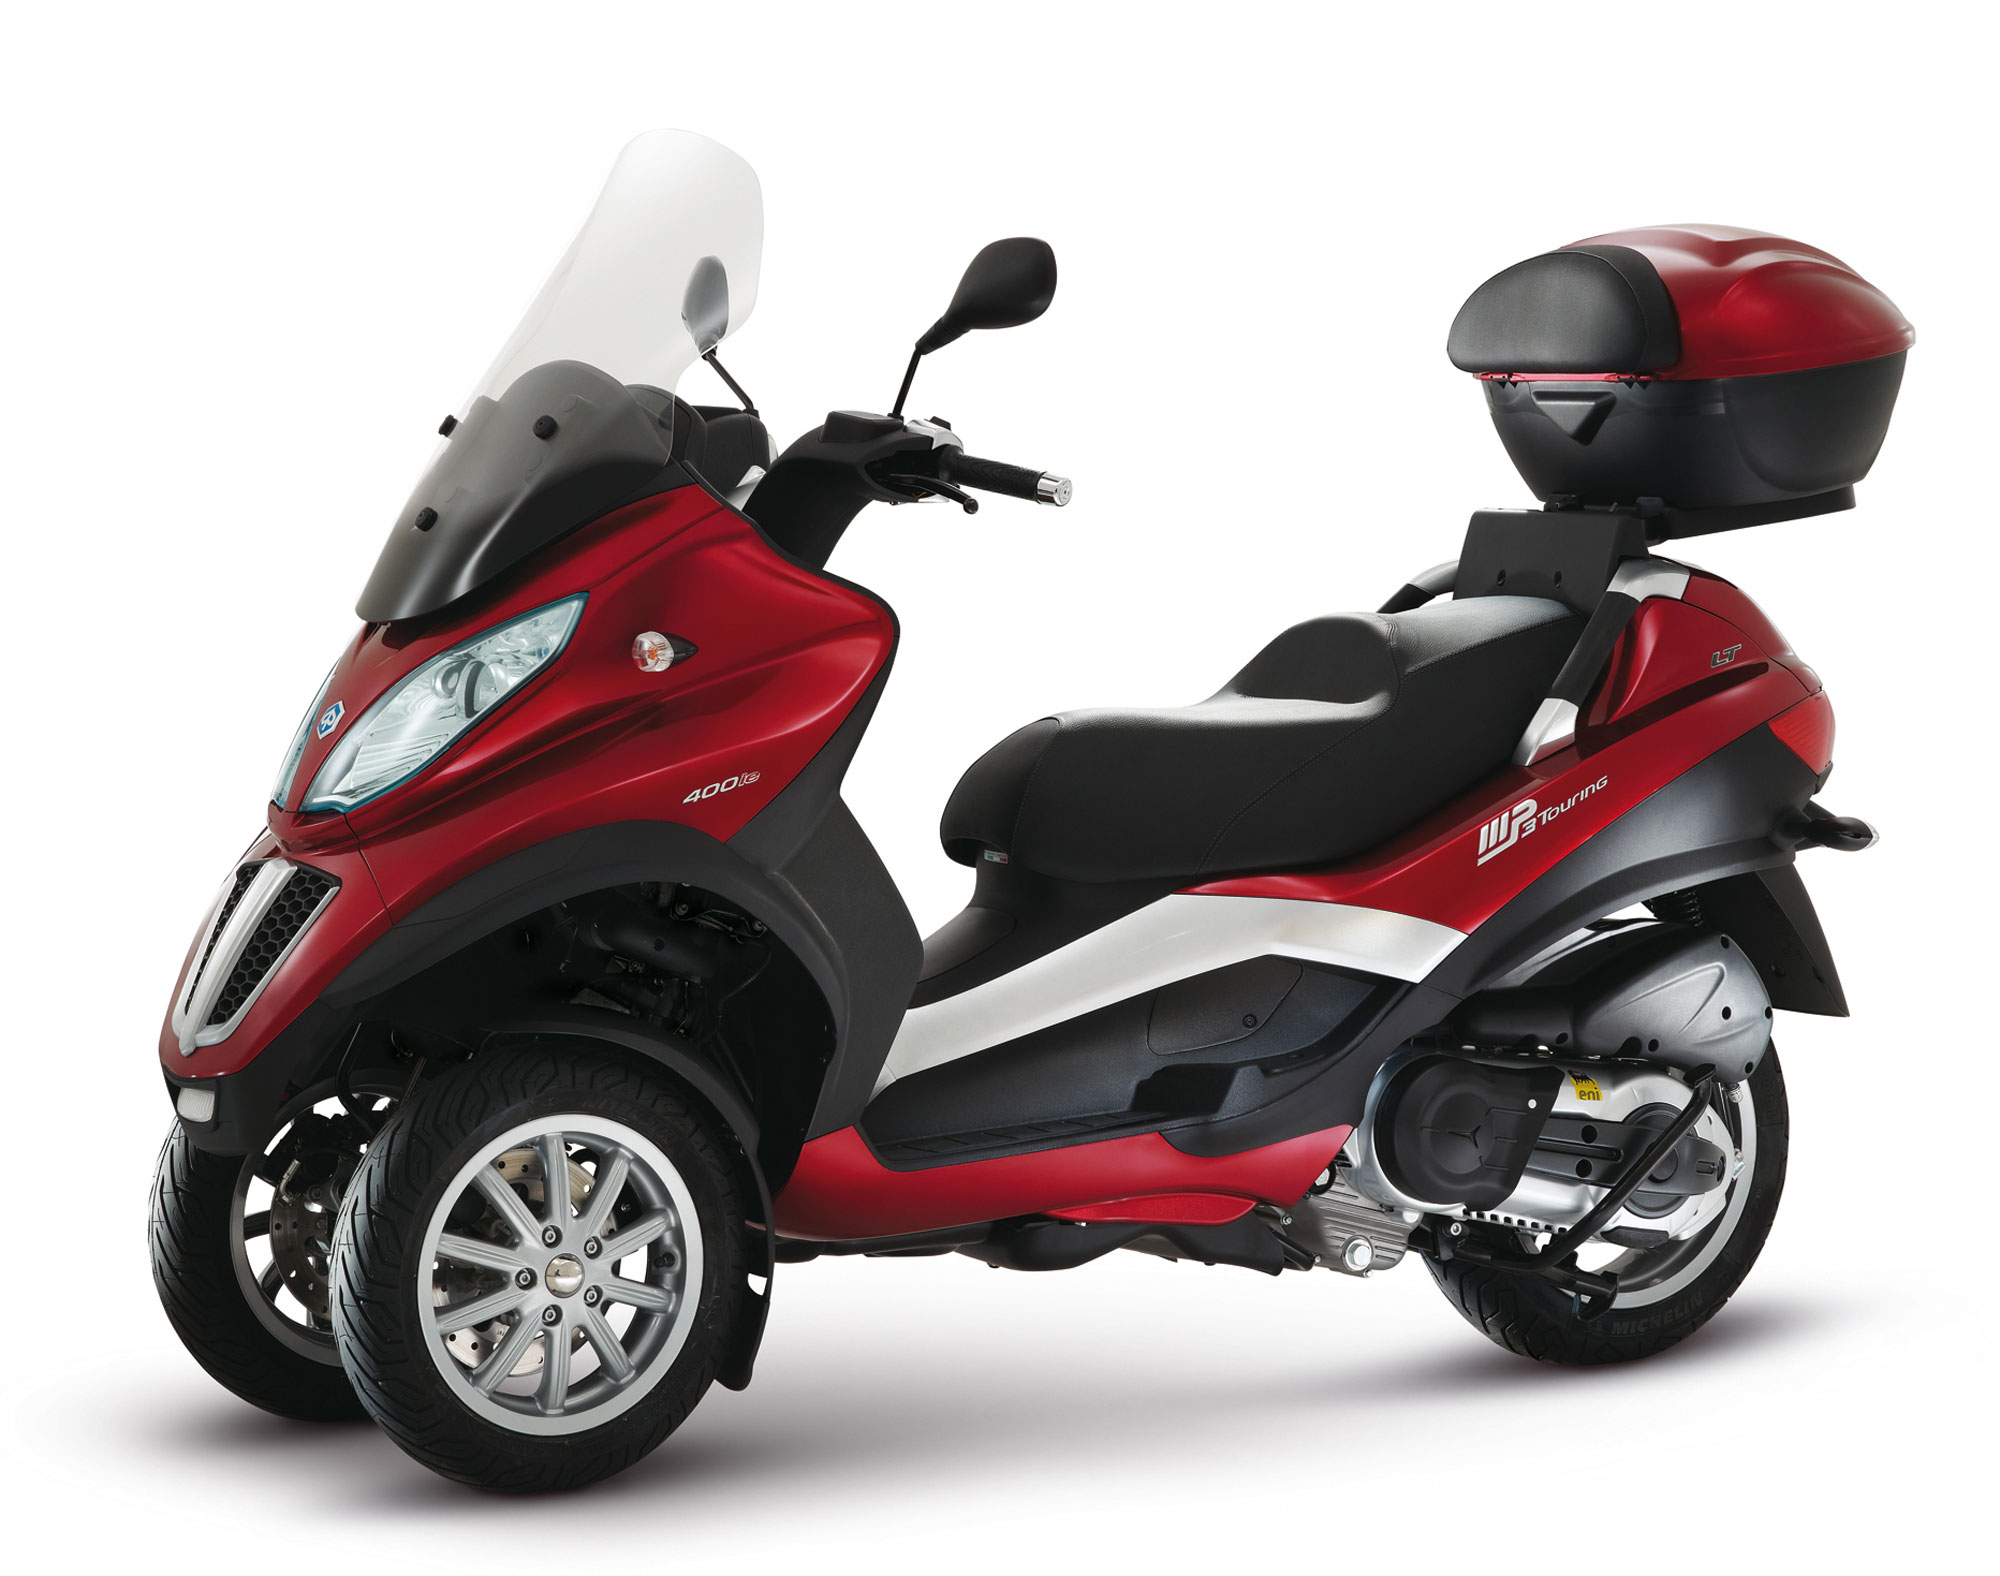 piaggio mp3 touring 400 i.e. specs - 2011, 2012 - autoevolution